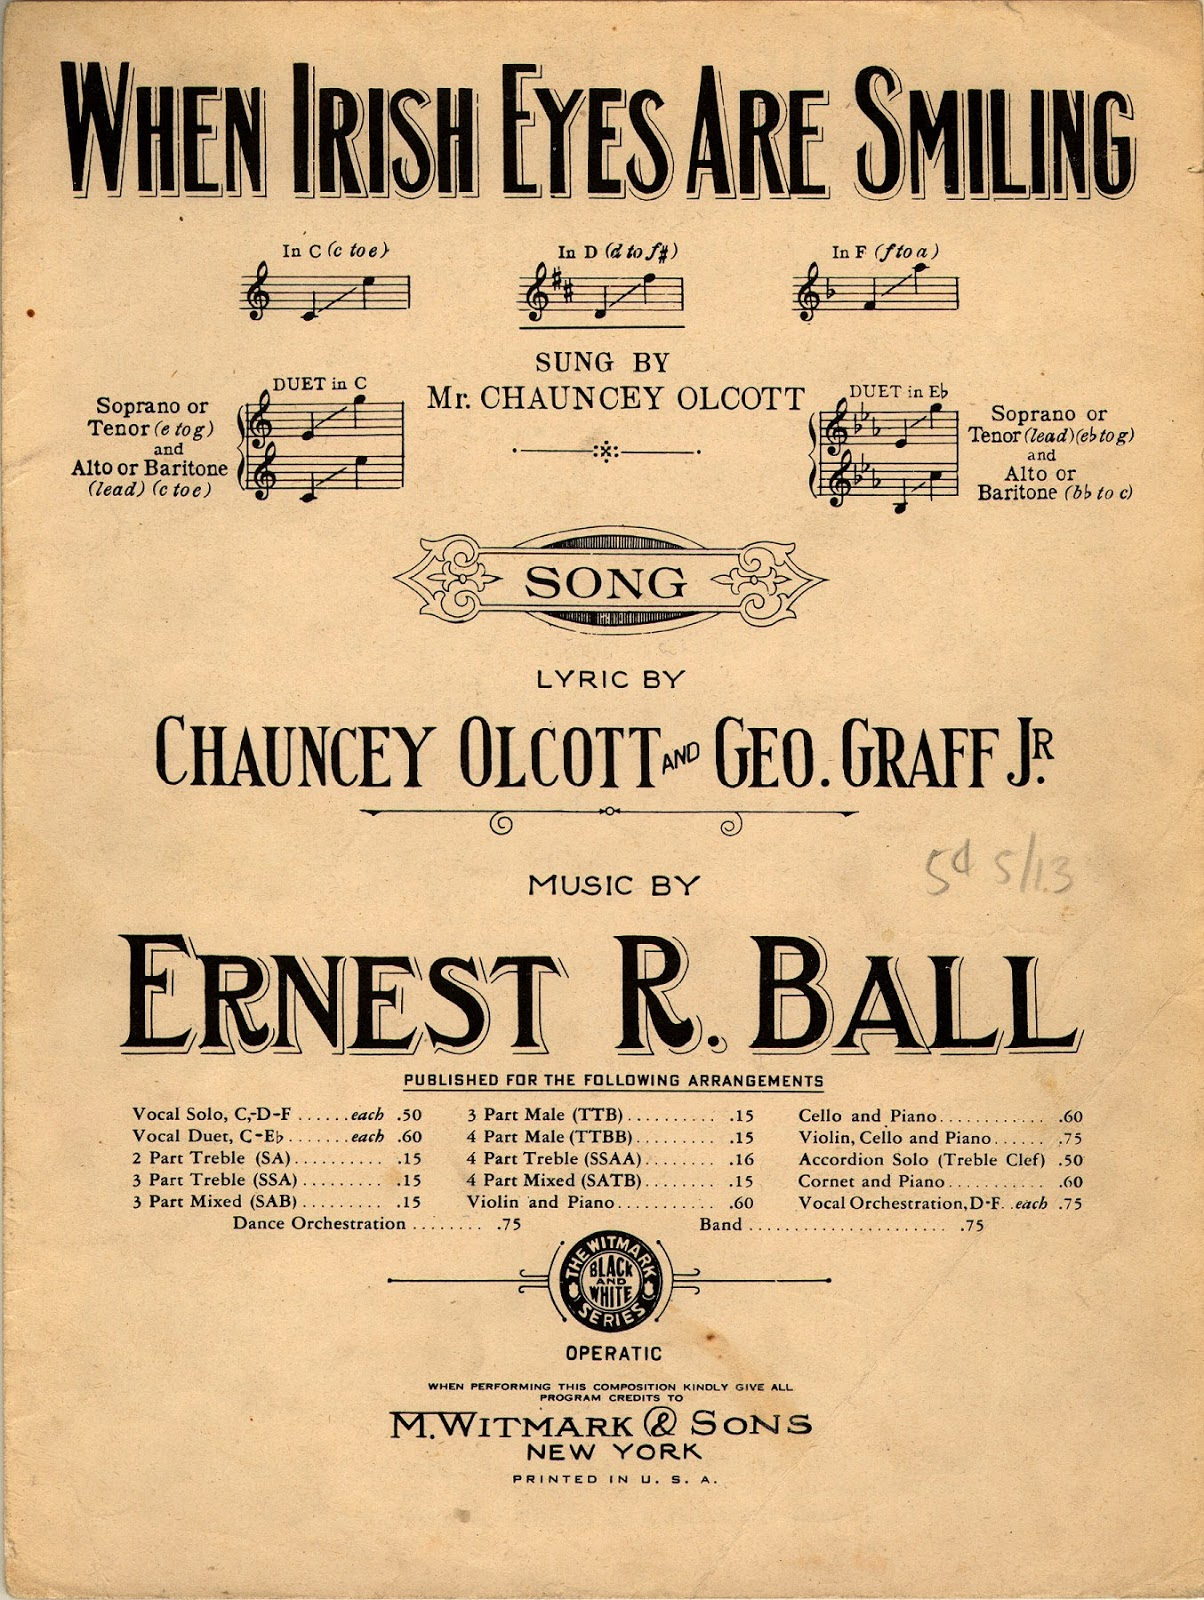 Oddly Enough, Though My Wild Irish Rose Purports To Be A Biography Of Poser And Lyricist Chauncey Olcott, There Is No Recognition Of His  Participation In